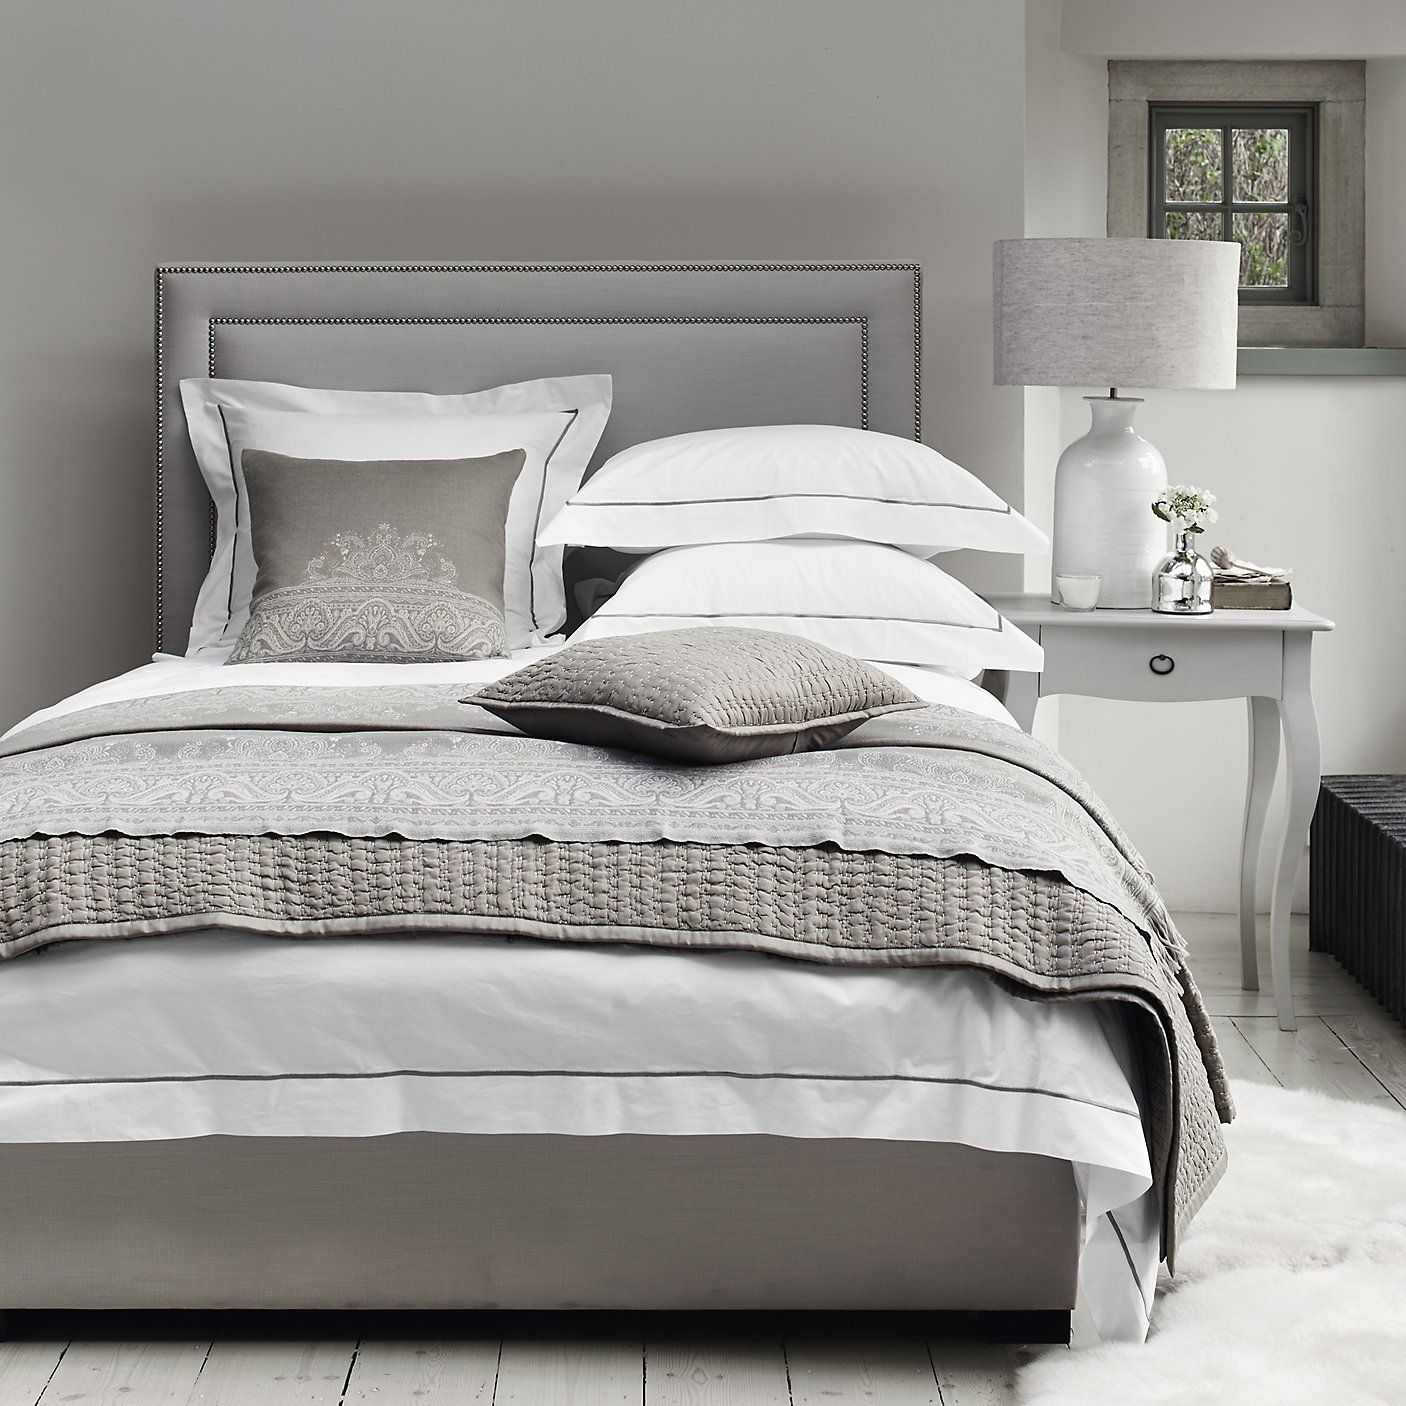 Berkeley Collection - Mink   The White Company   Luxurious ...